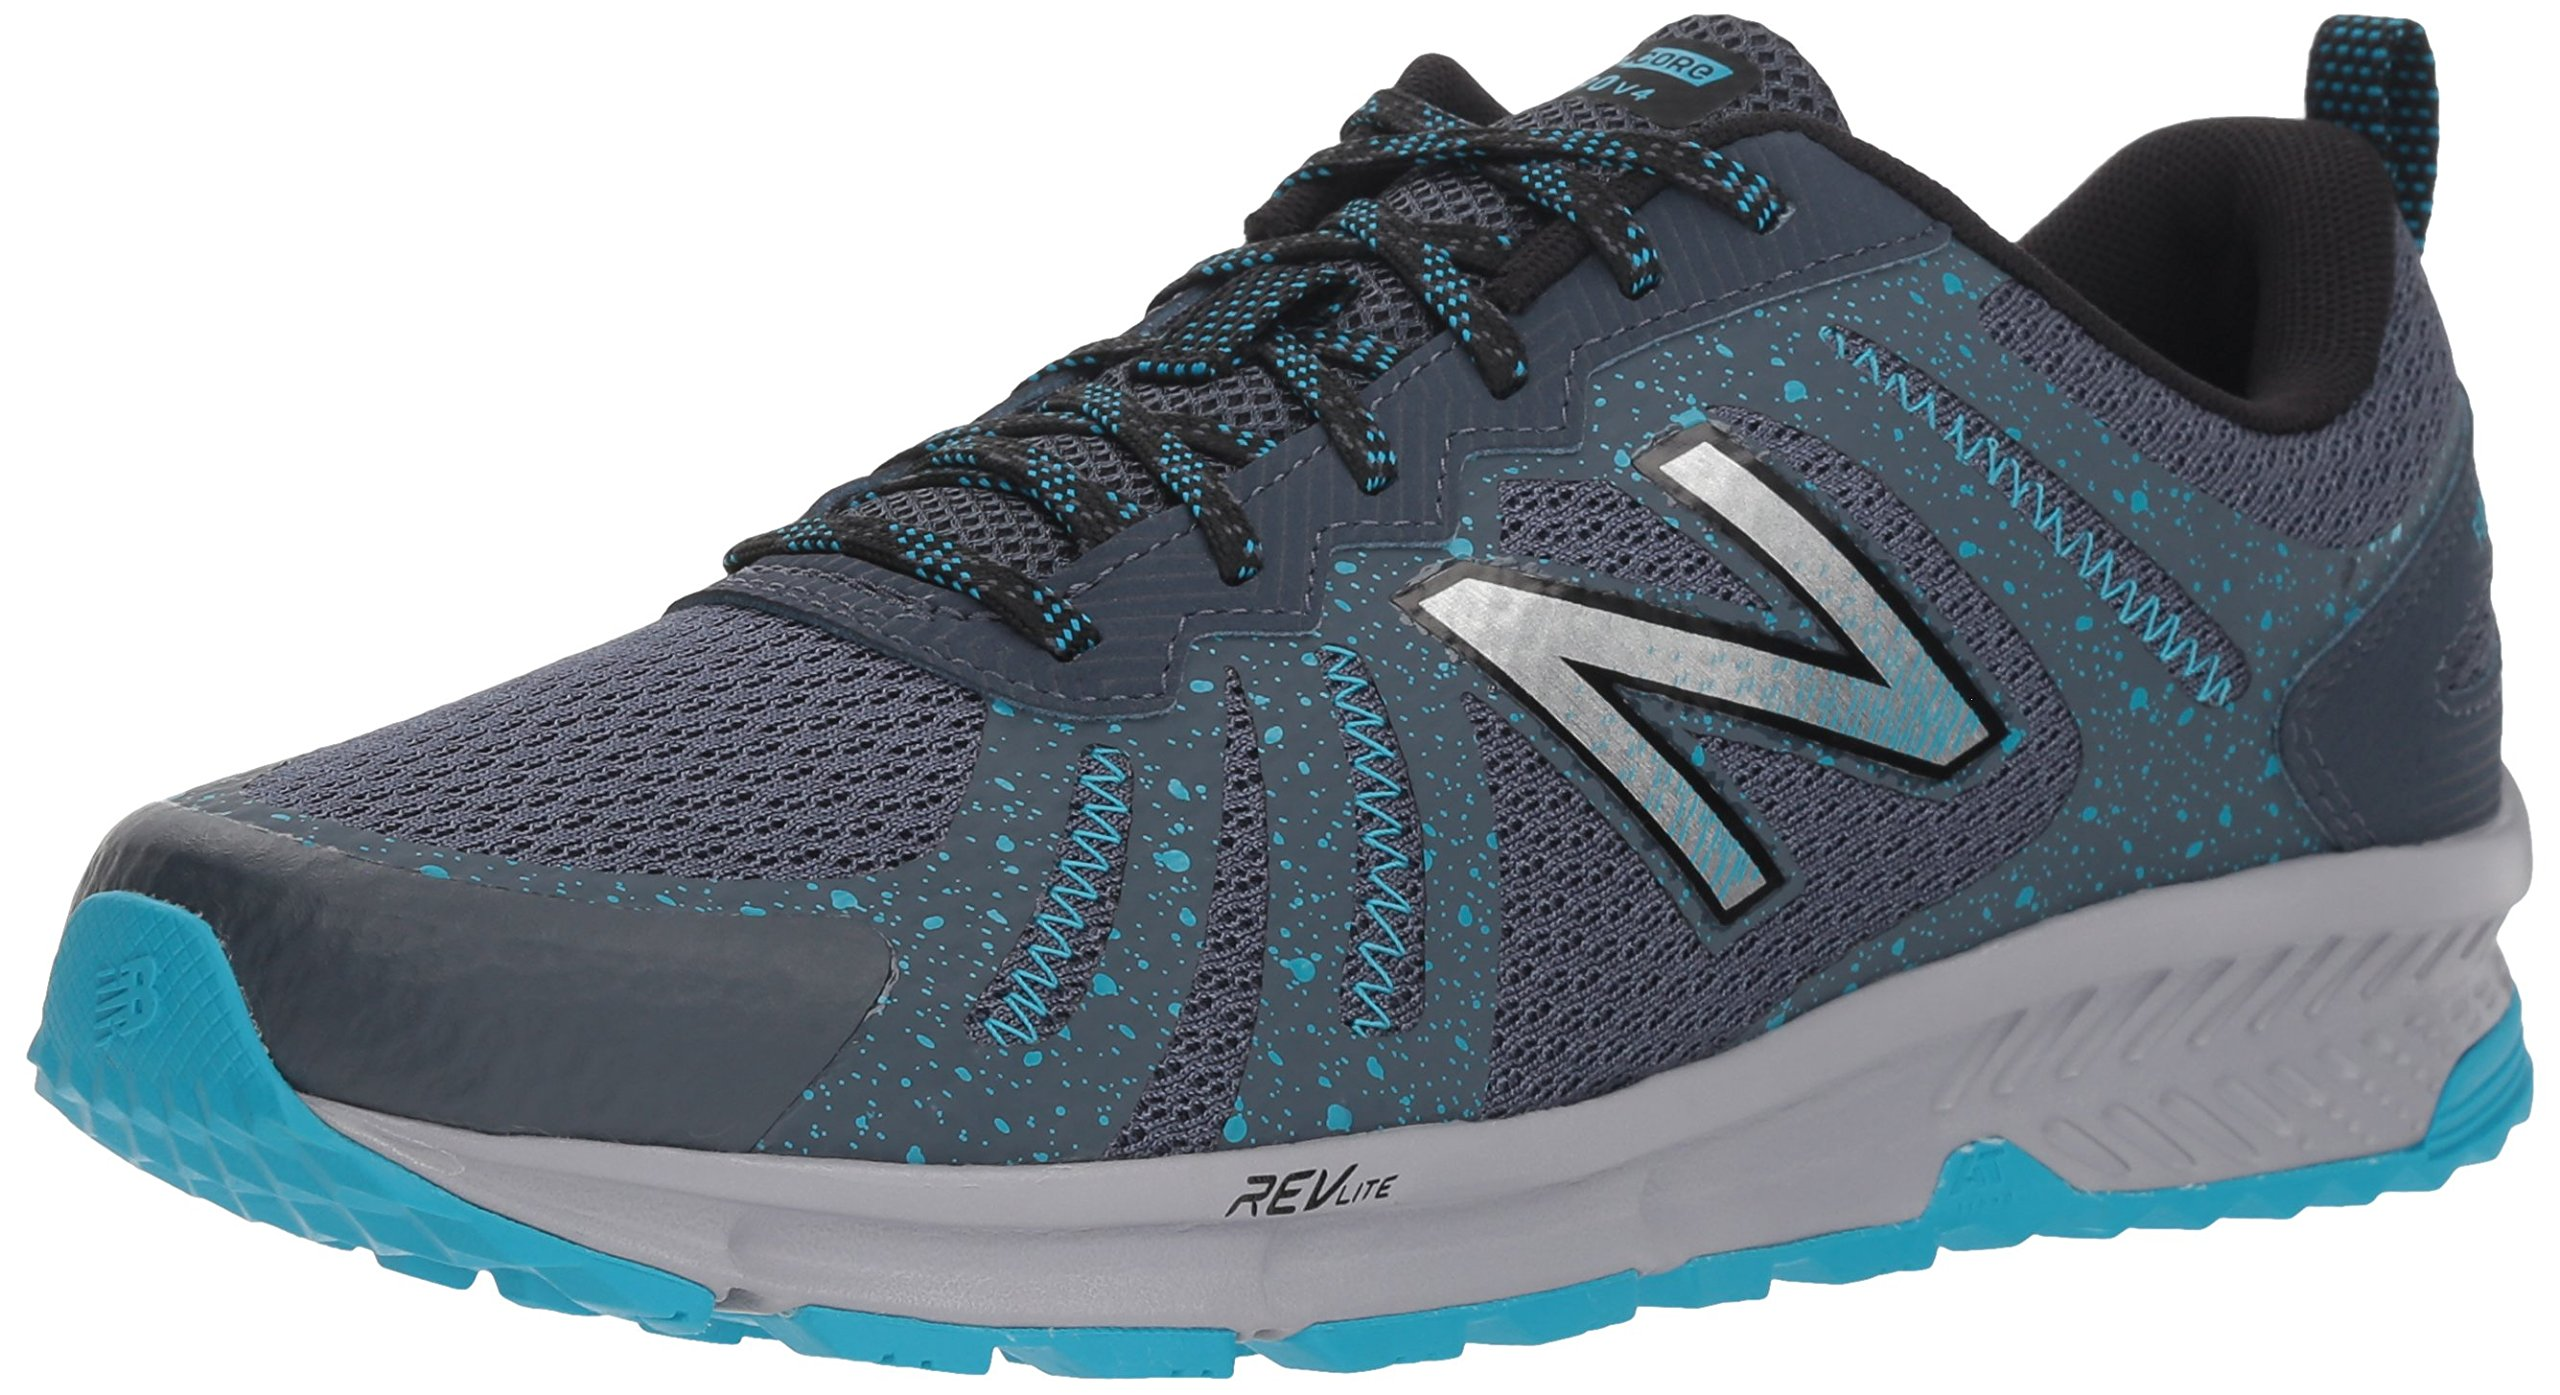 New Balance Women's 590v4 FuelCore Trail Running Shoe Dark Grey 6 D US by New Balance (Image #1)